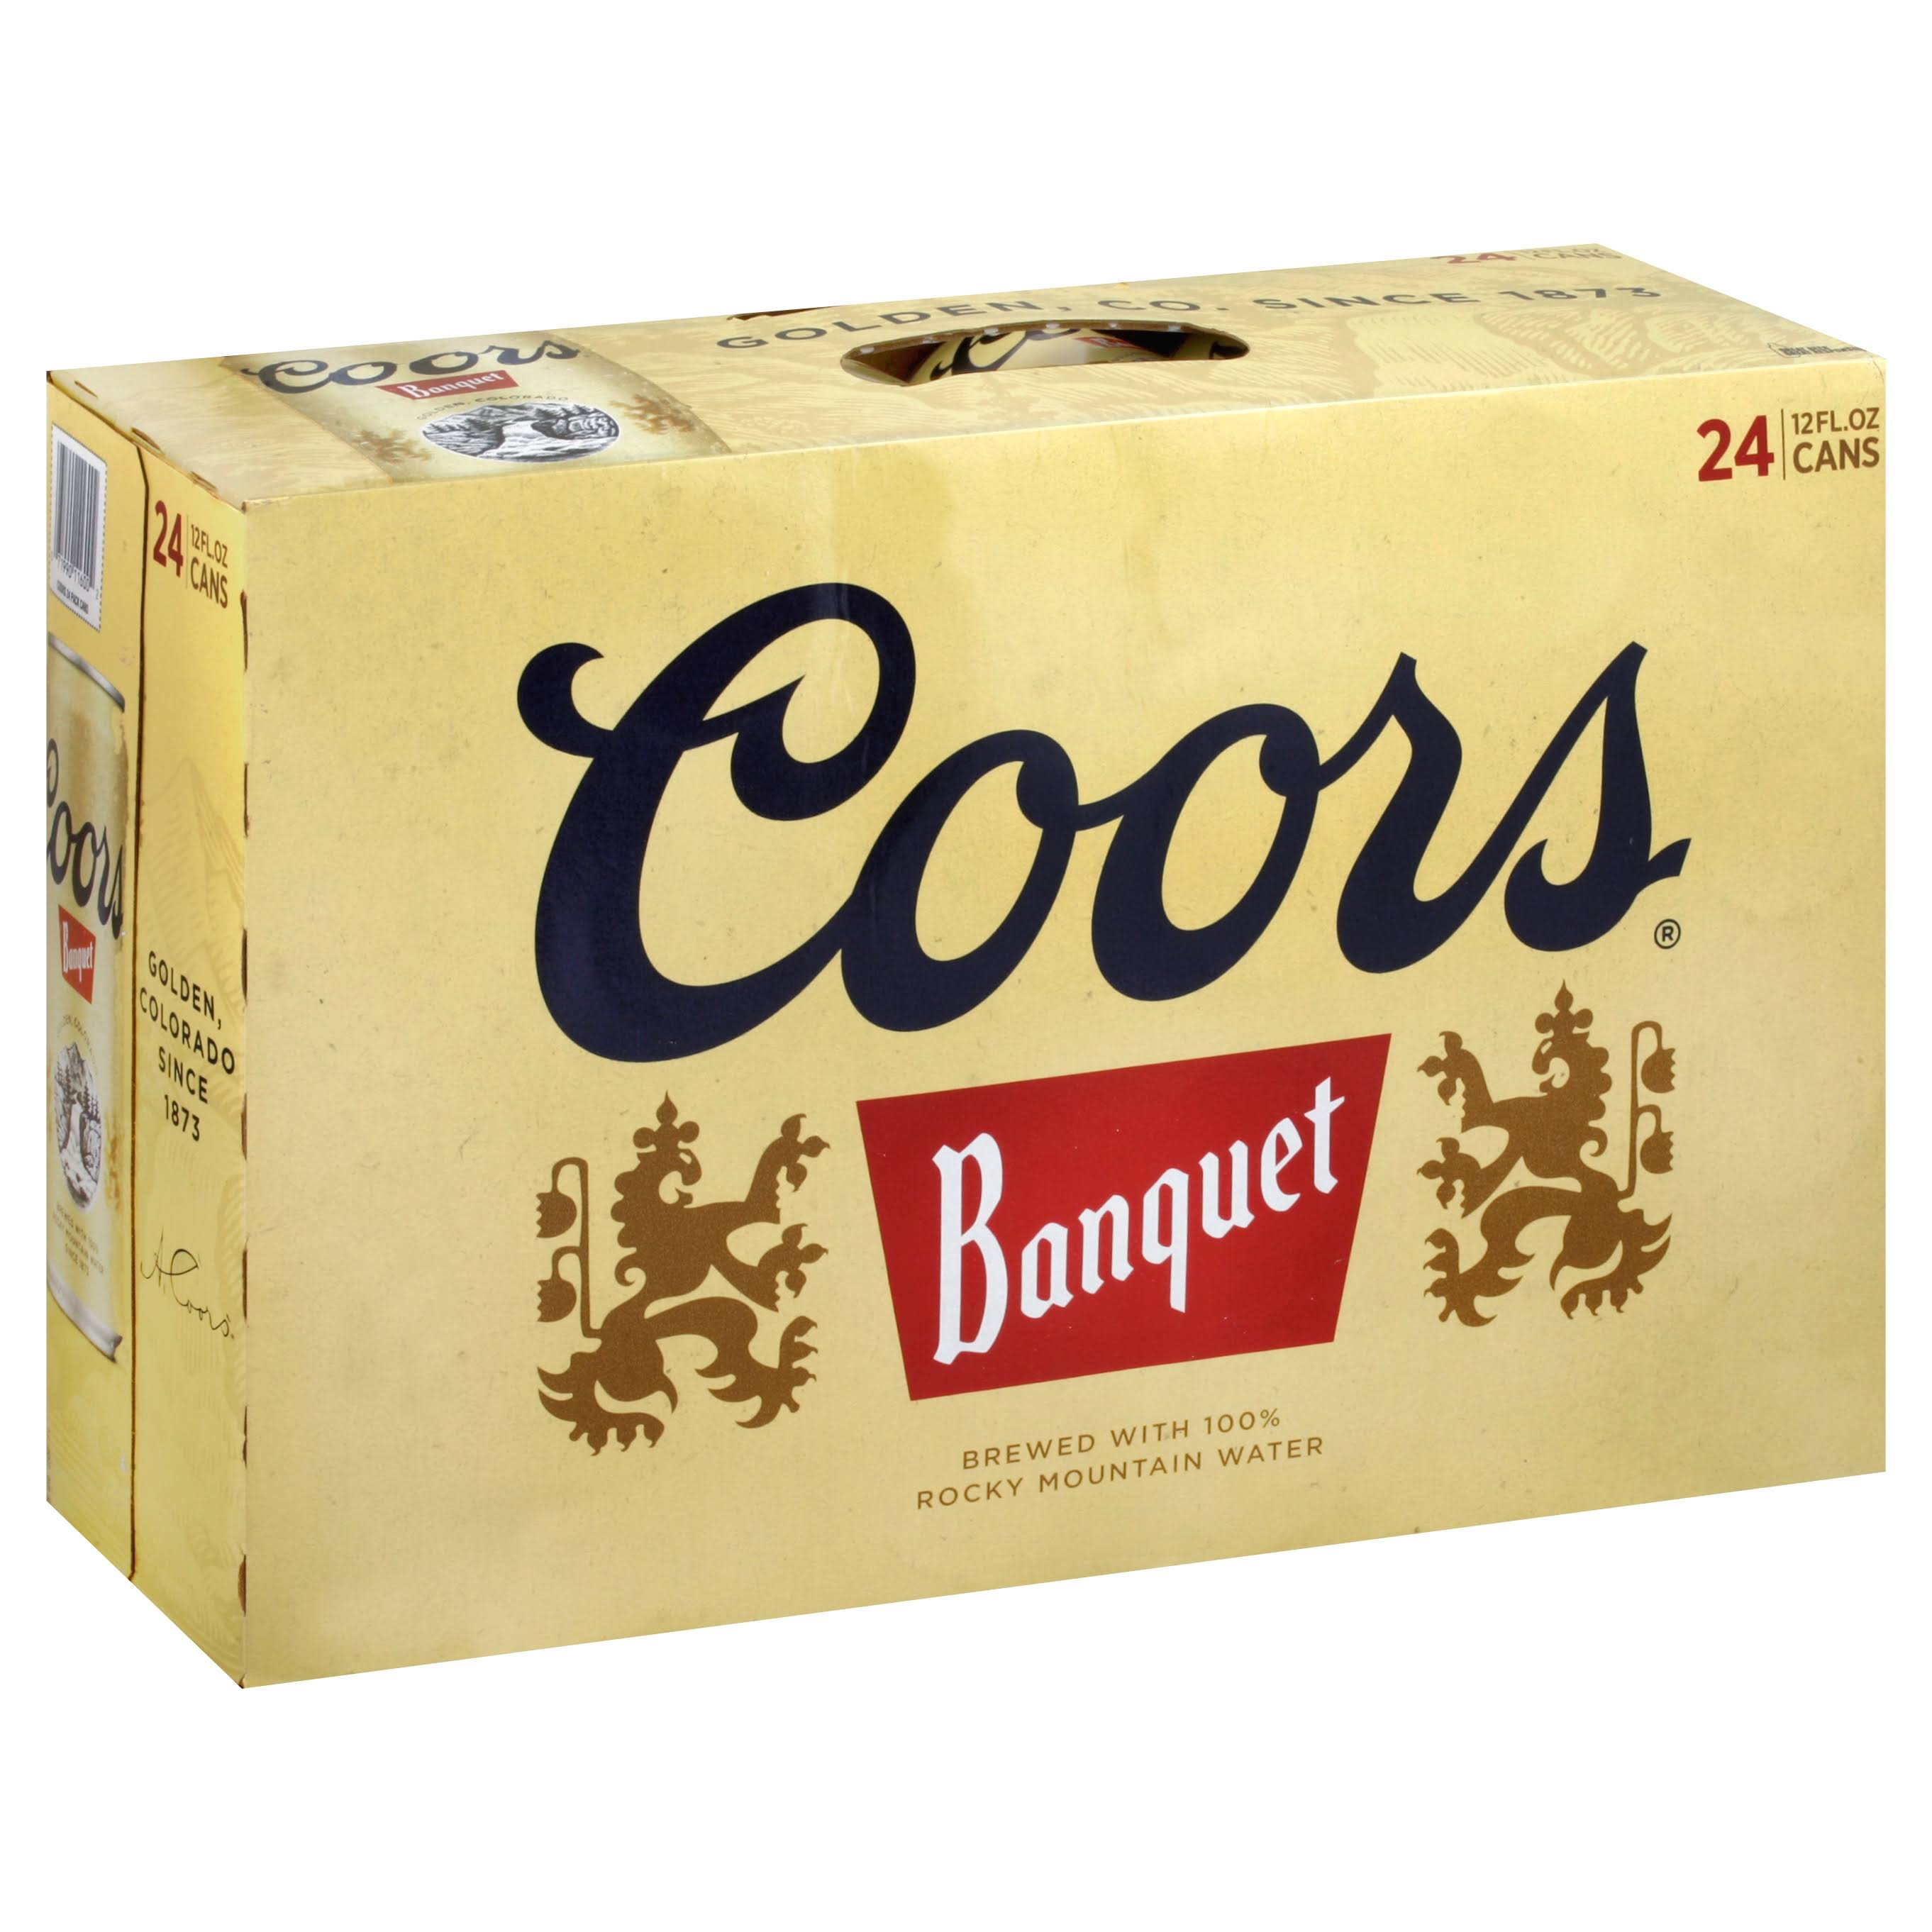 Coors Banquet Beer, 24 Pack - 24 pack, 12 fl oz cans